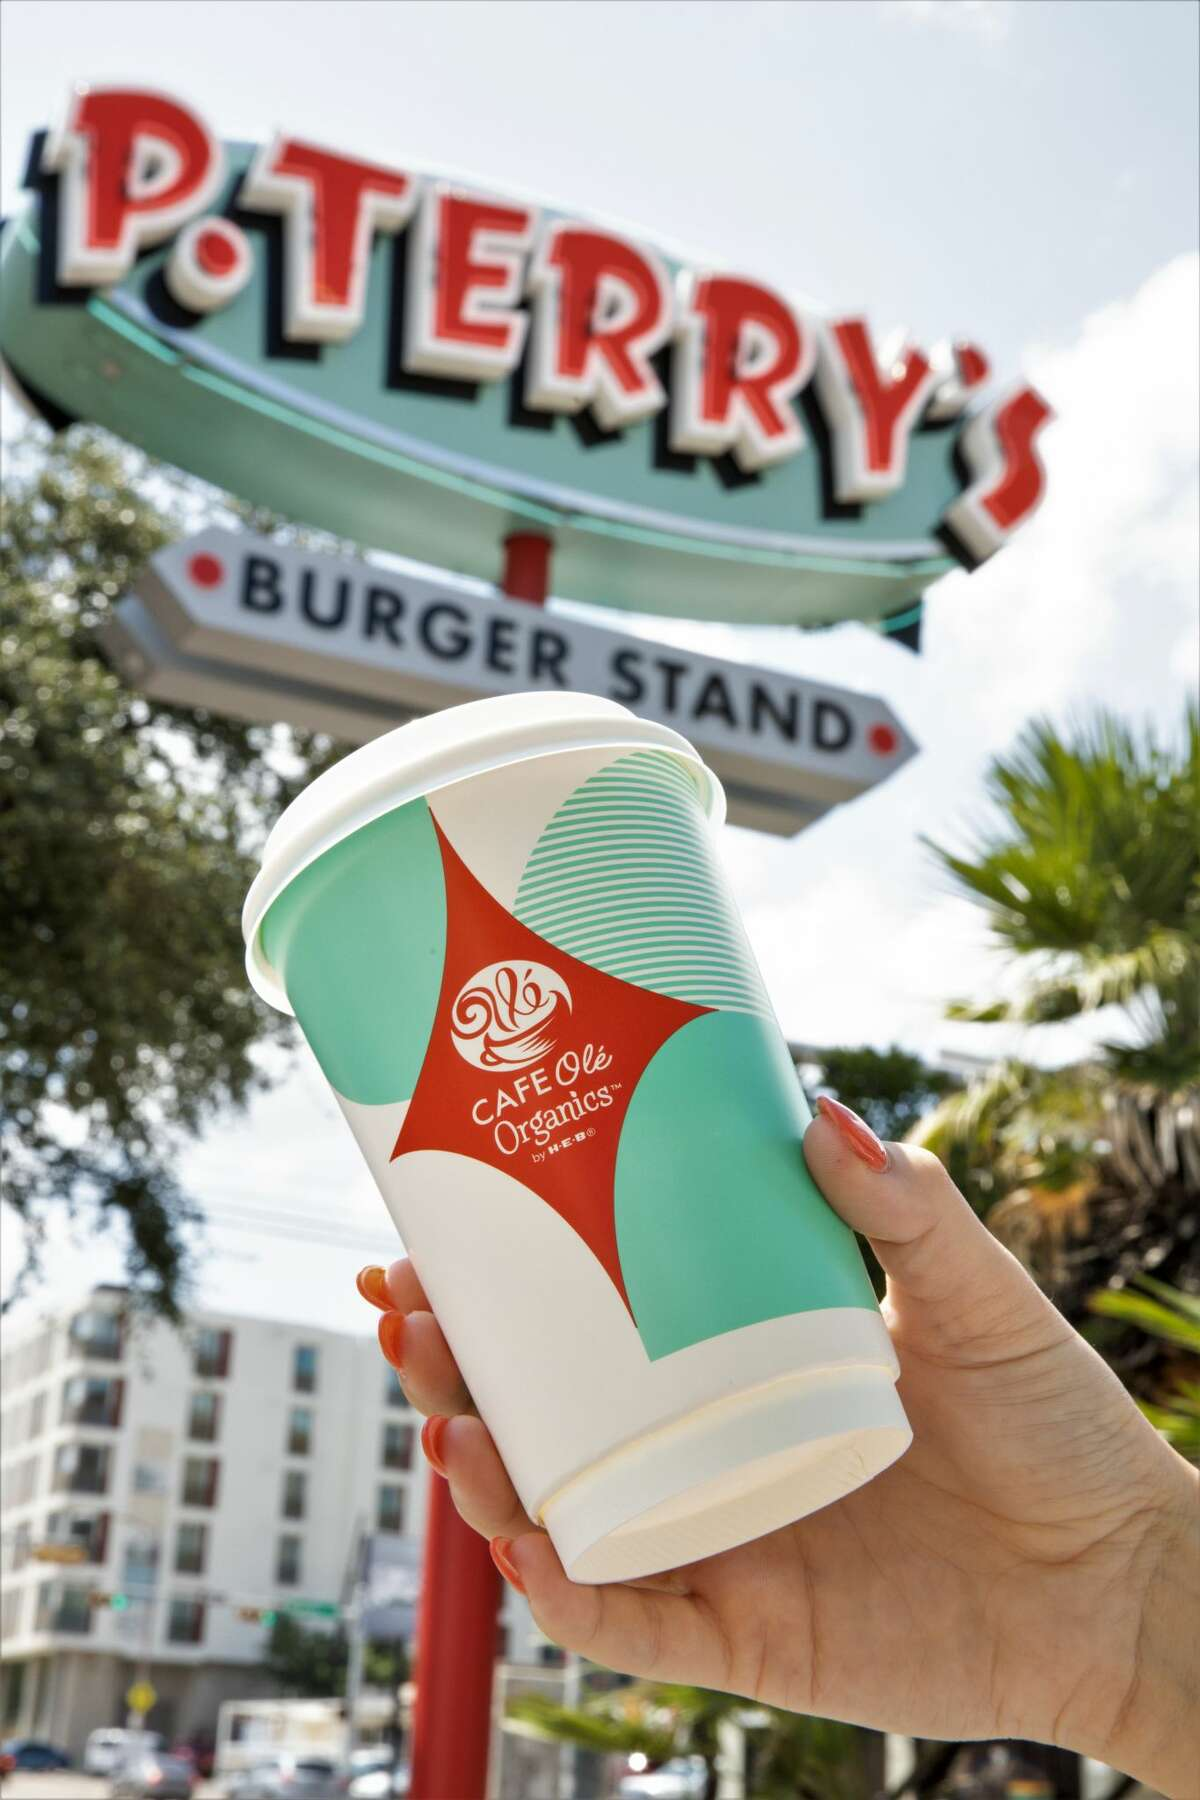 The family owned chain, based in Austin, is now serving Cafe Oléorganic coffee at all burger stands daily during breakfast hours. The partnership between the two Texas brands marks the first time H-E-B's Cafe Olécoffee is sold at retail.